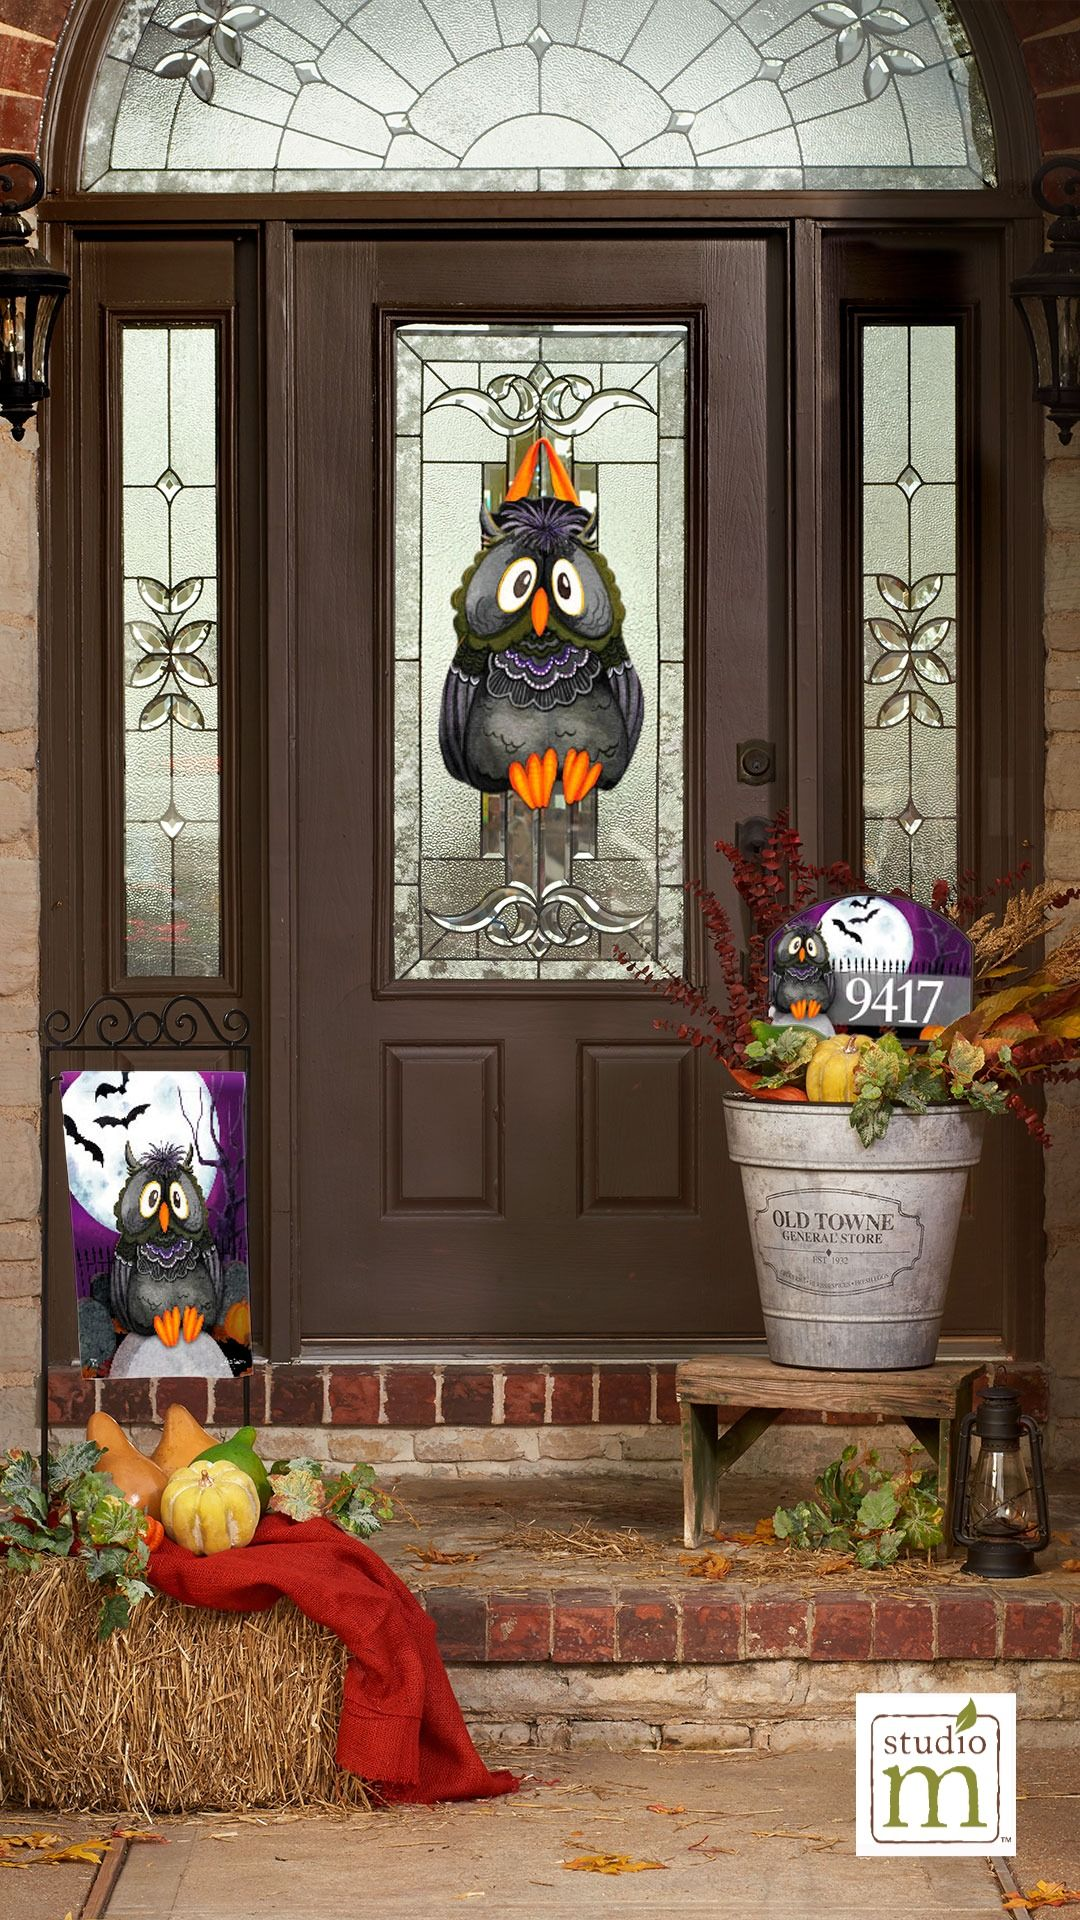 Decorate Your Home For Halloween With The Sweetest Decor